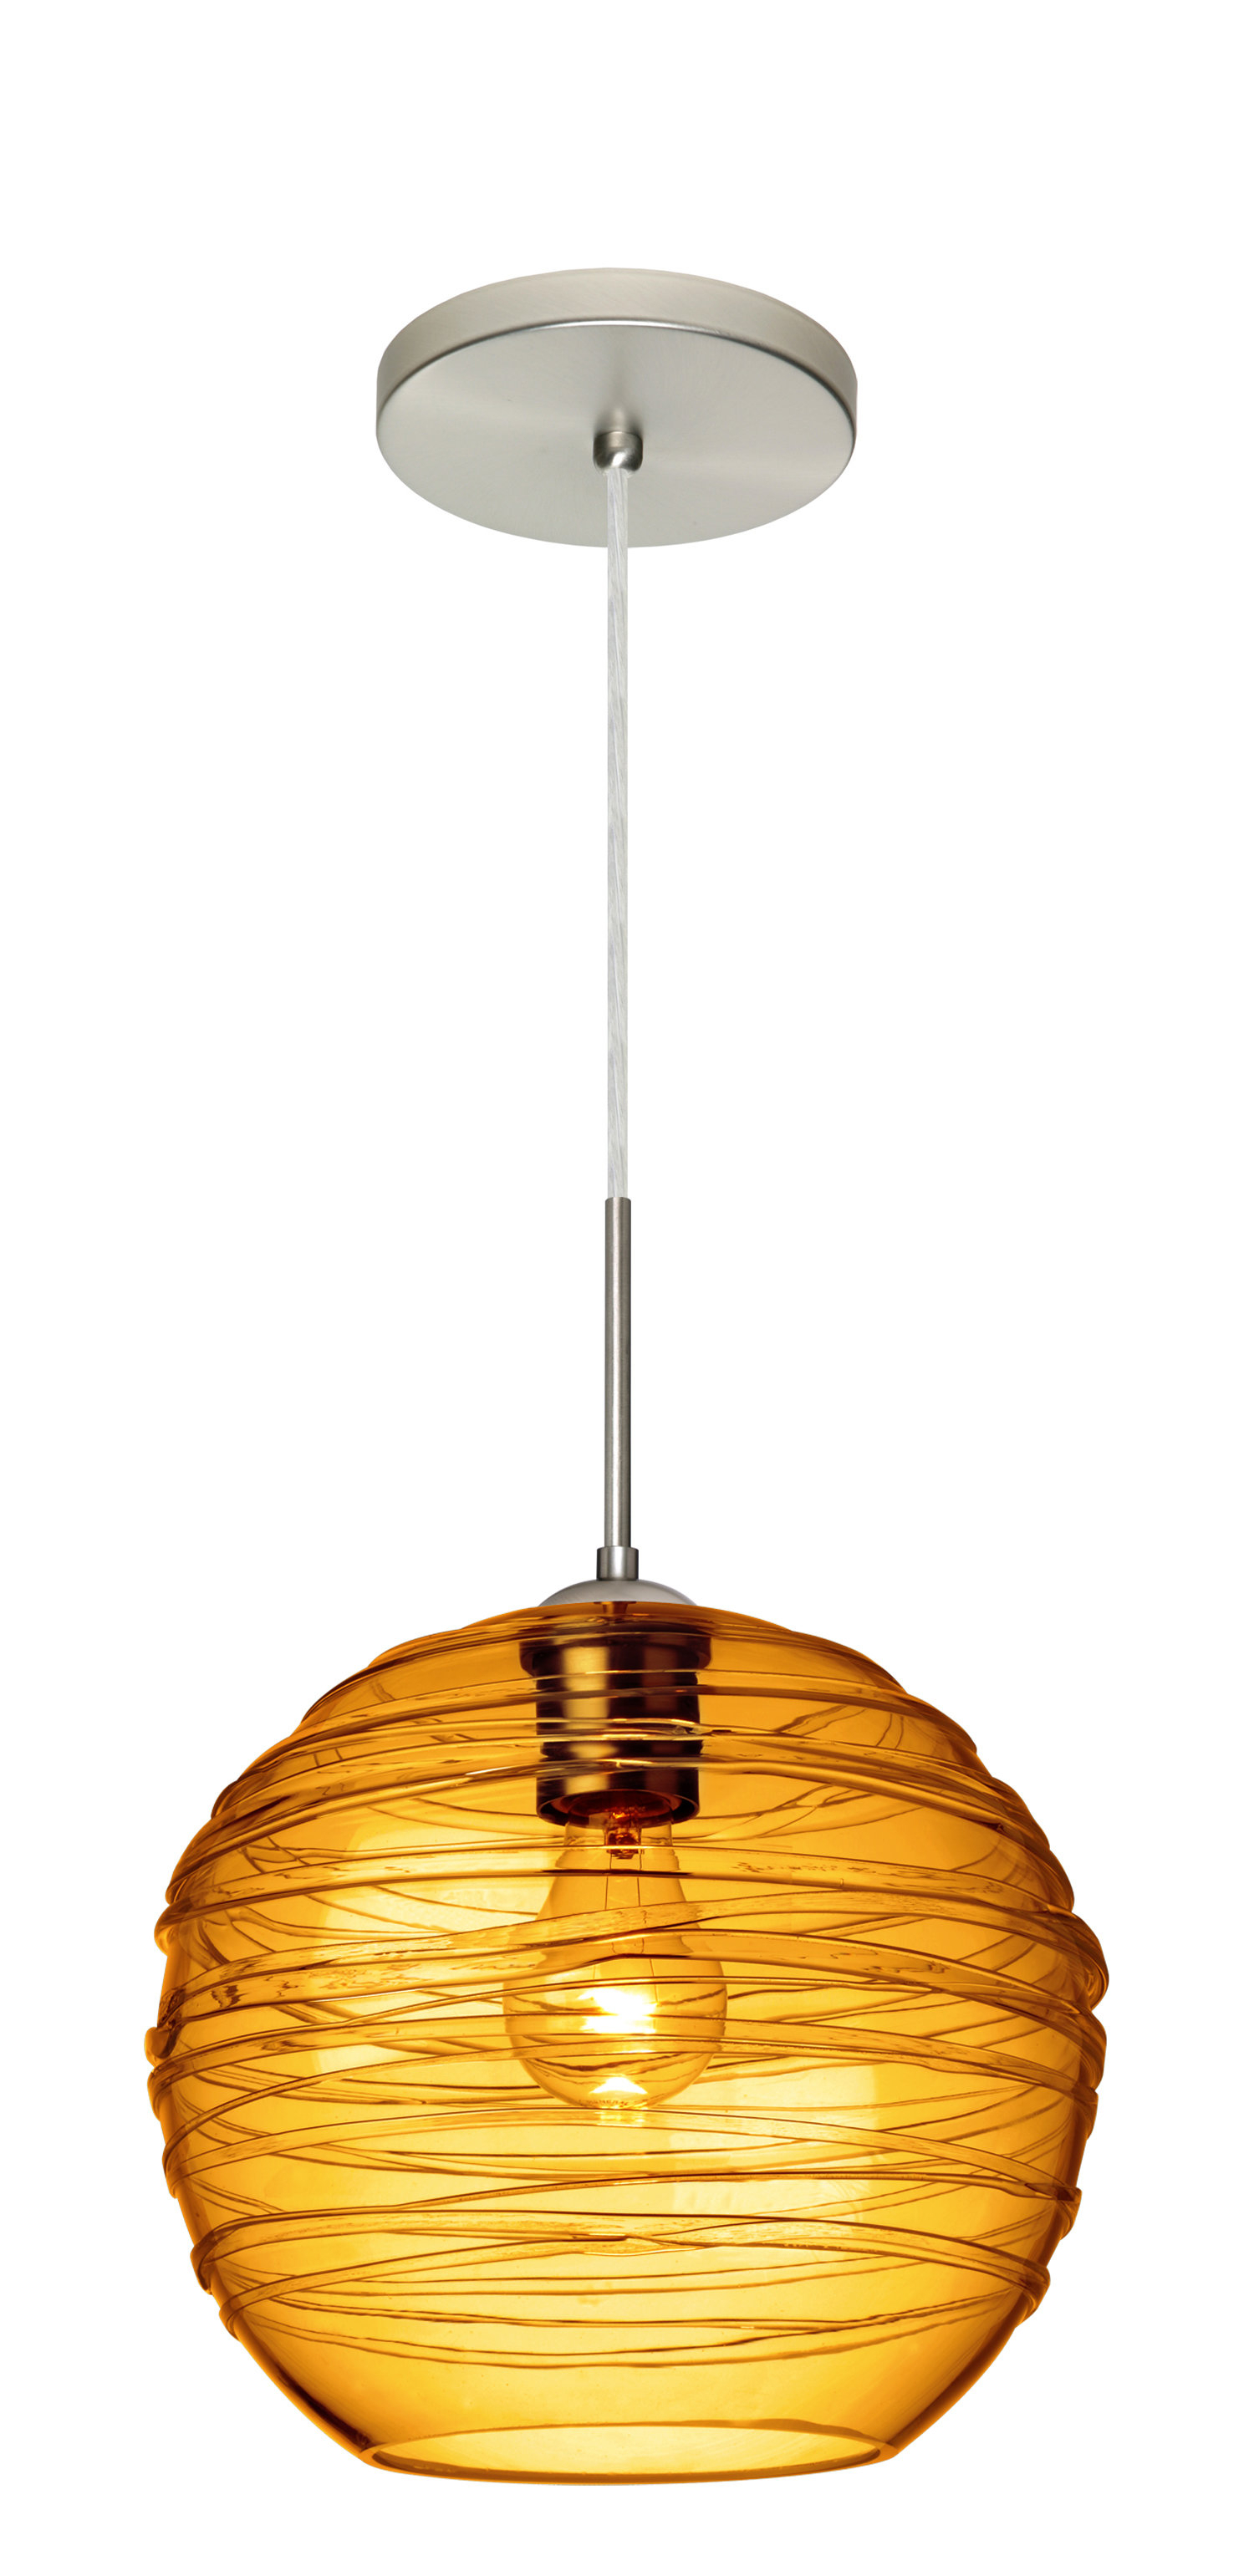 Lukens 1-Light Globe Pendant throughout Melora 1-Light Single Geometric Pendants (Image 16 of 30)